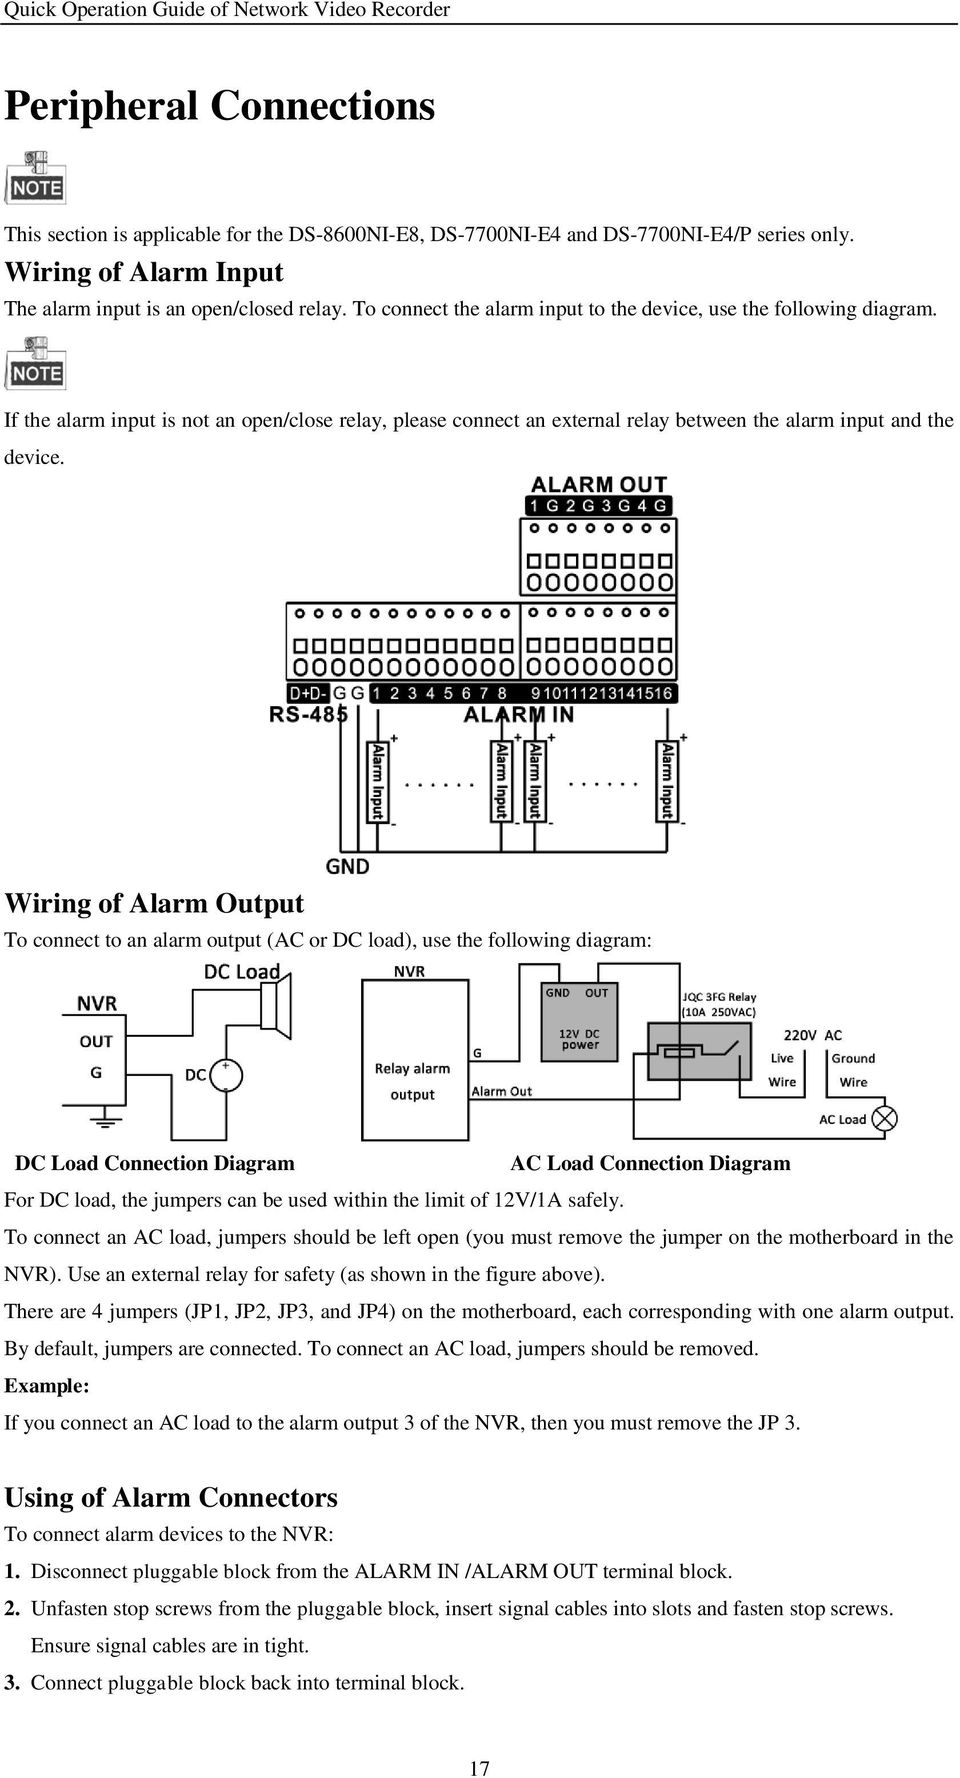 Wiring of Alarm Output To connect to an alarm output (AC or DC load), use the following diagram: DC Load Connection Diagram AC Load Connection Diagram For DC load, the jumpers can be used within the